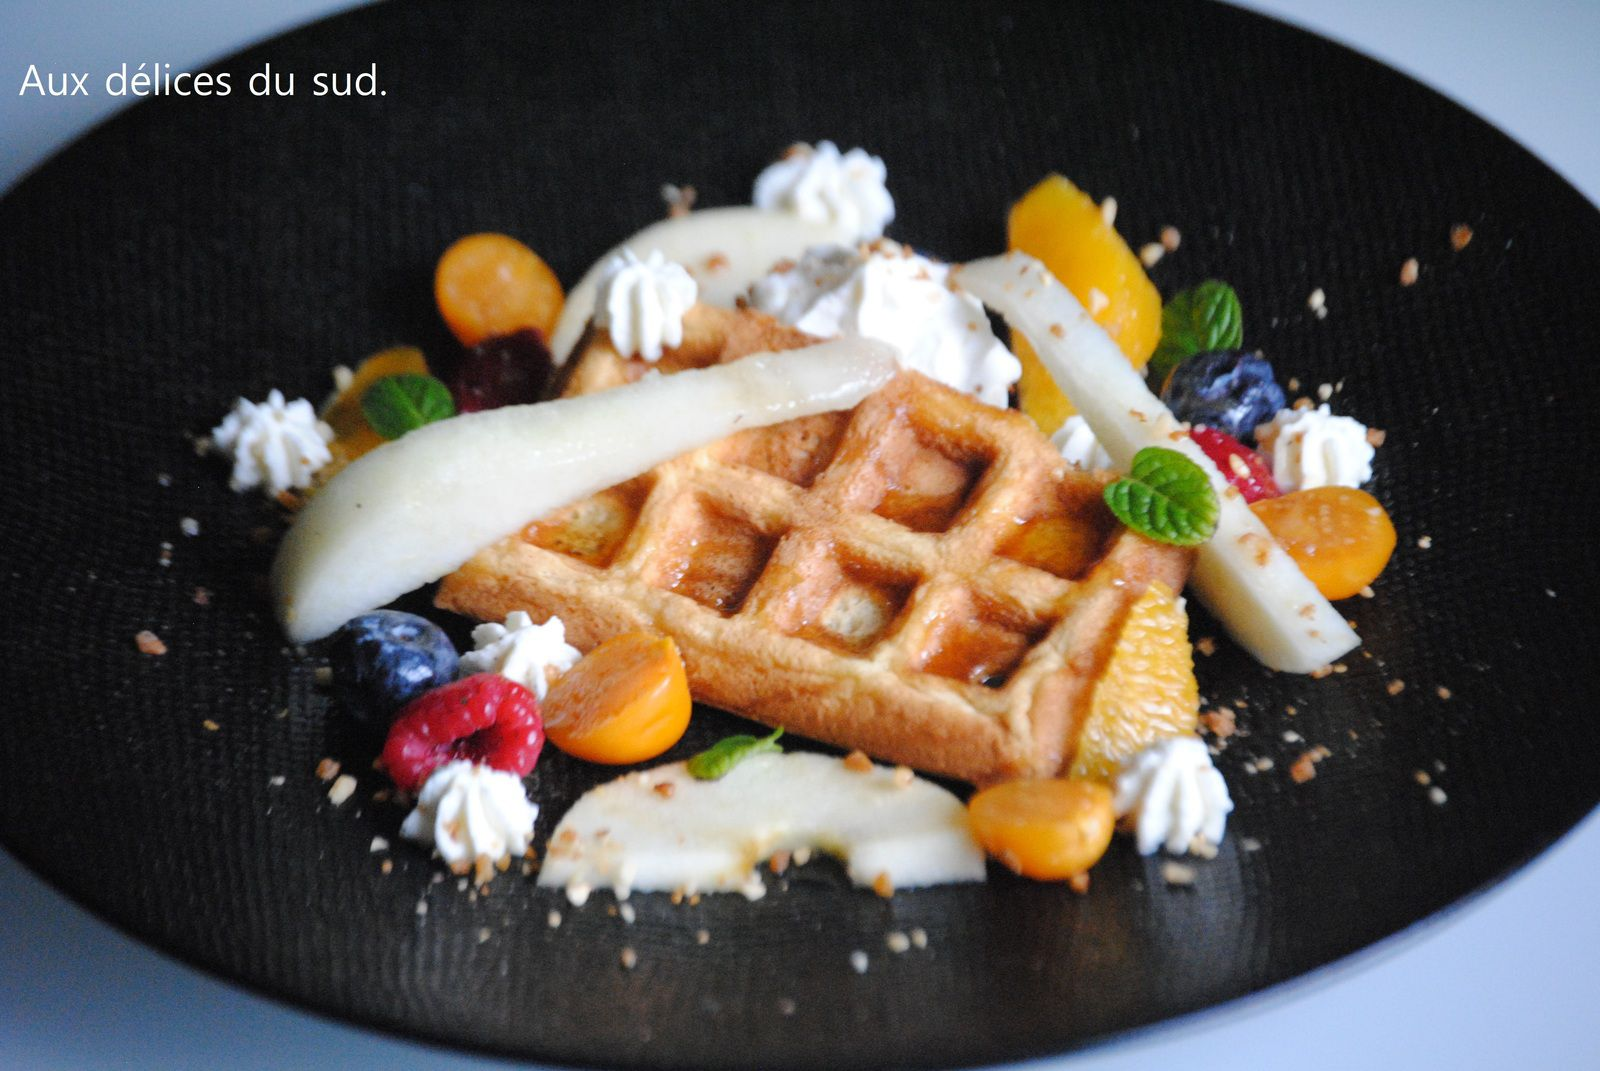 Gaufre chantilly et fruits de saison .